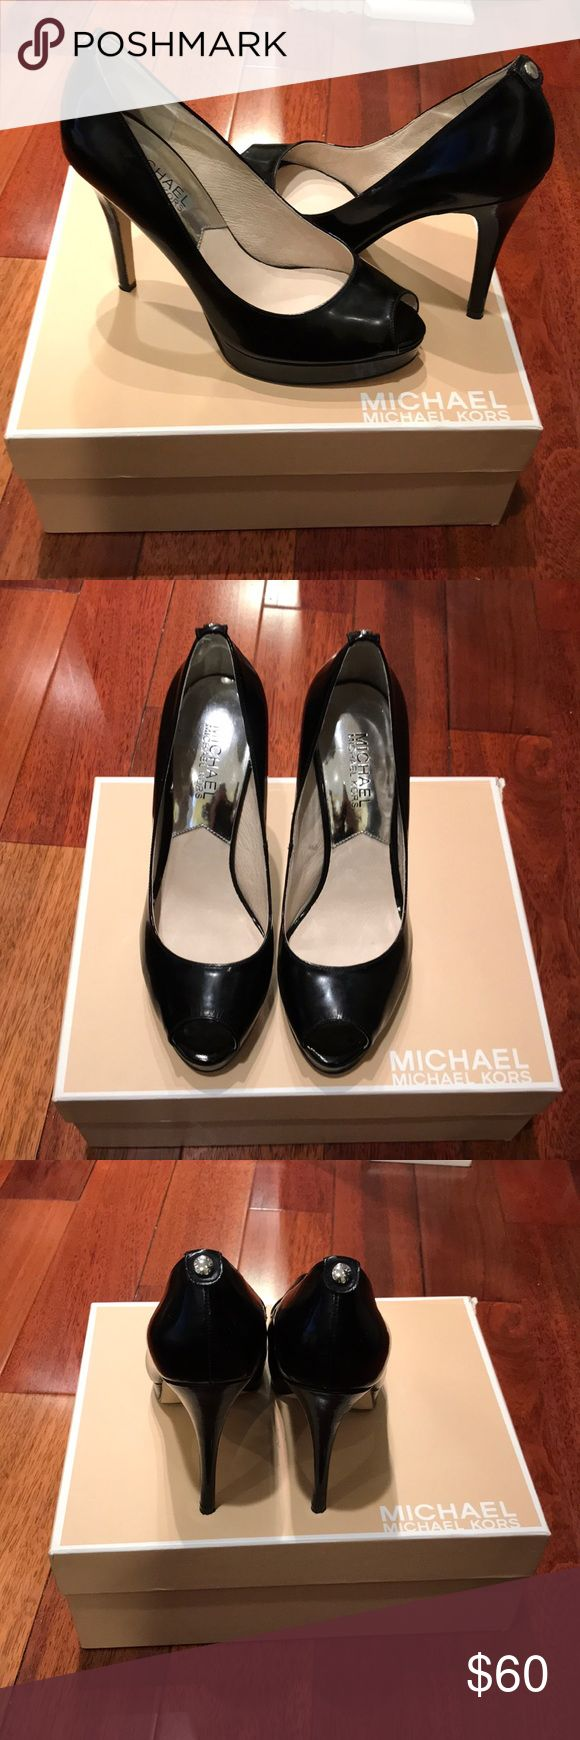 """Michael Kors York Platform Patent Leather Peep Toe Only worn once A patent leather shiny black peep toe pump from Michael Michael Kors. Platform is just right and heel height is sleek and sexy for that polished finish for white pants, denim or cocktail dress. Patent leather upper,Leather lining, Logo button at heel Rubber sole, 4 1/2"""" heel height, 1"""" front platform Michael Kors Shoes Heels"""